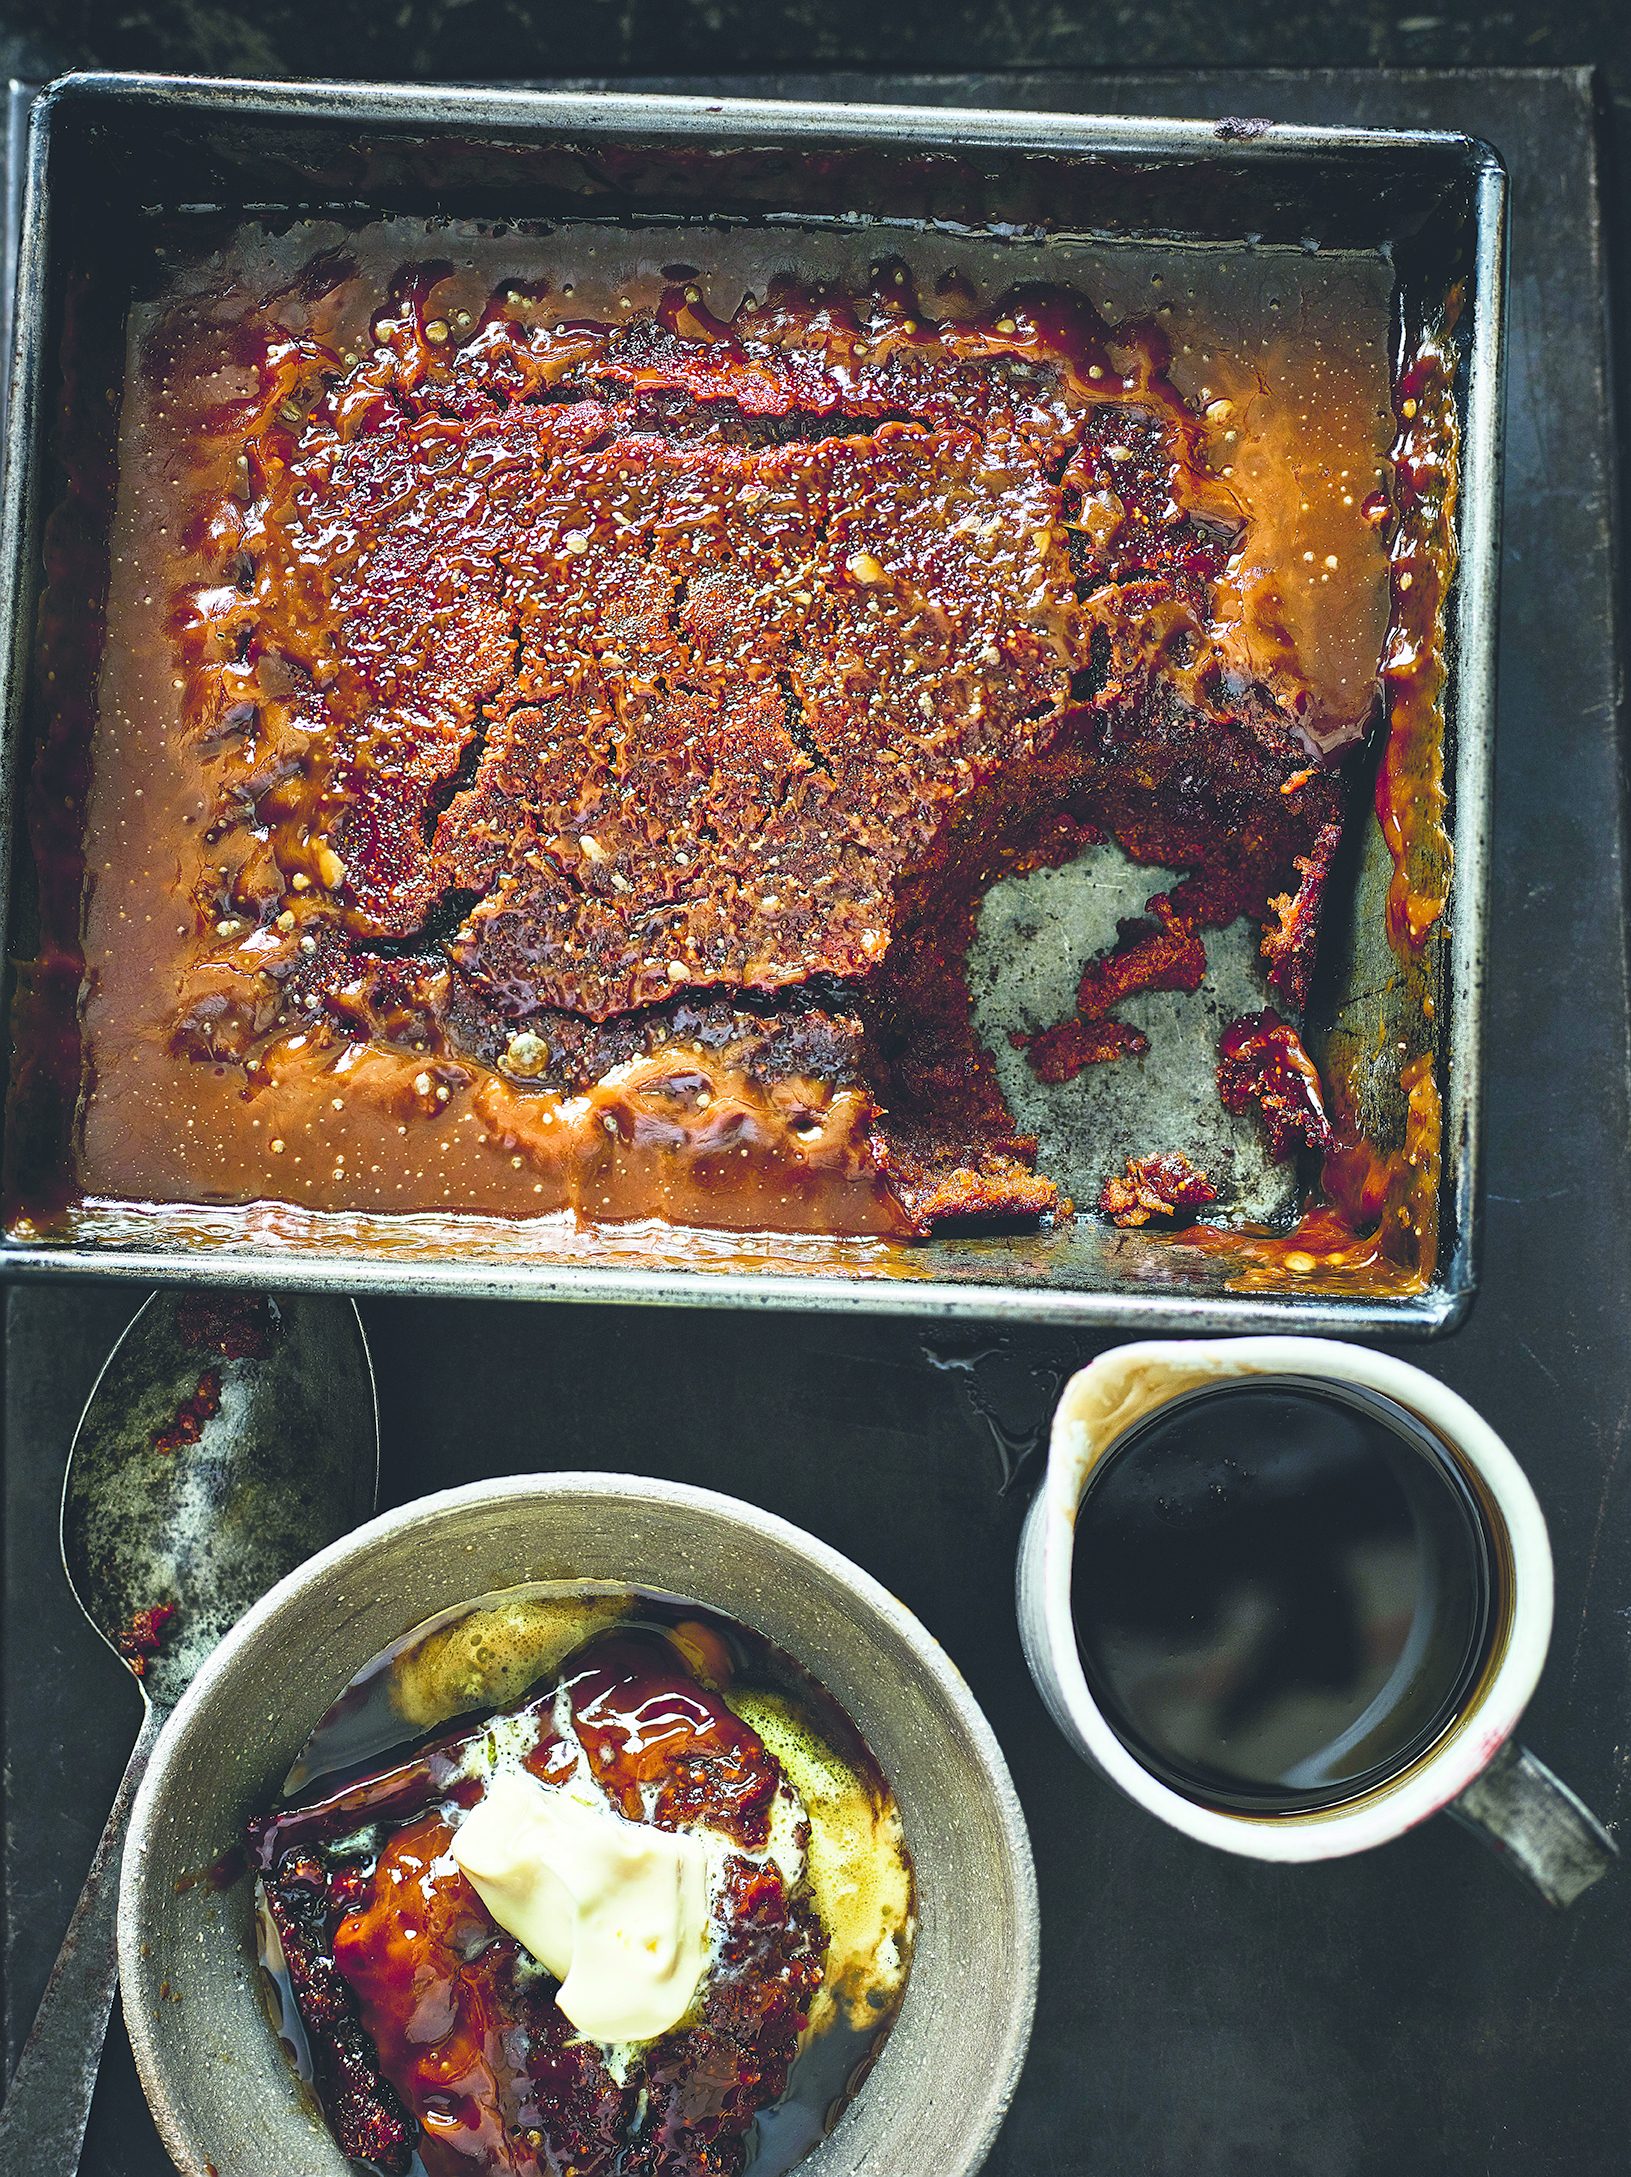 Rootleaf Spicedcarrotfigpudding